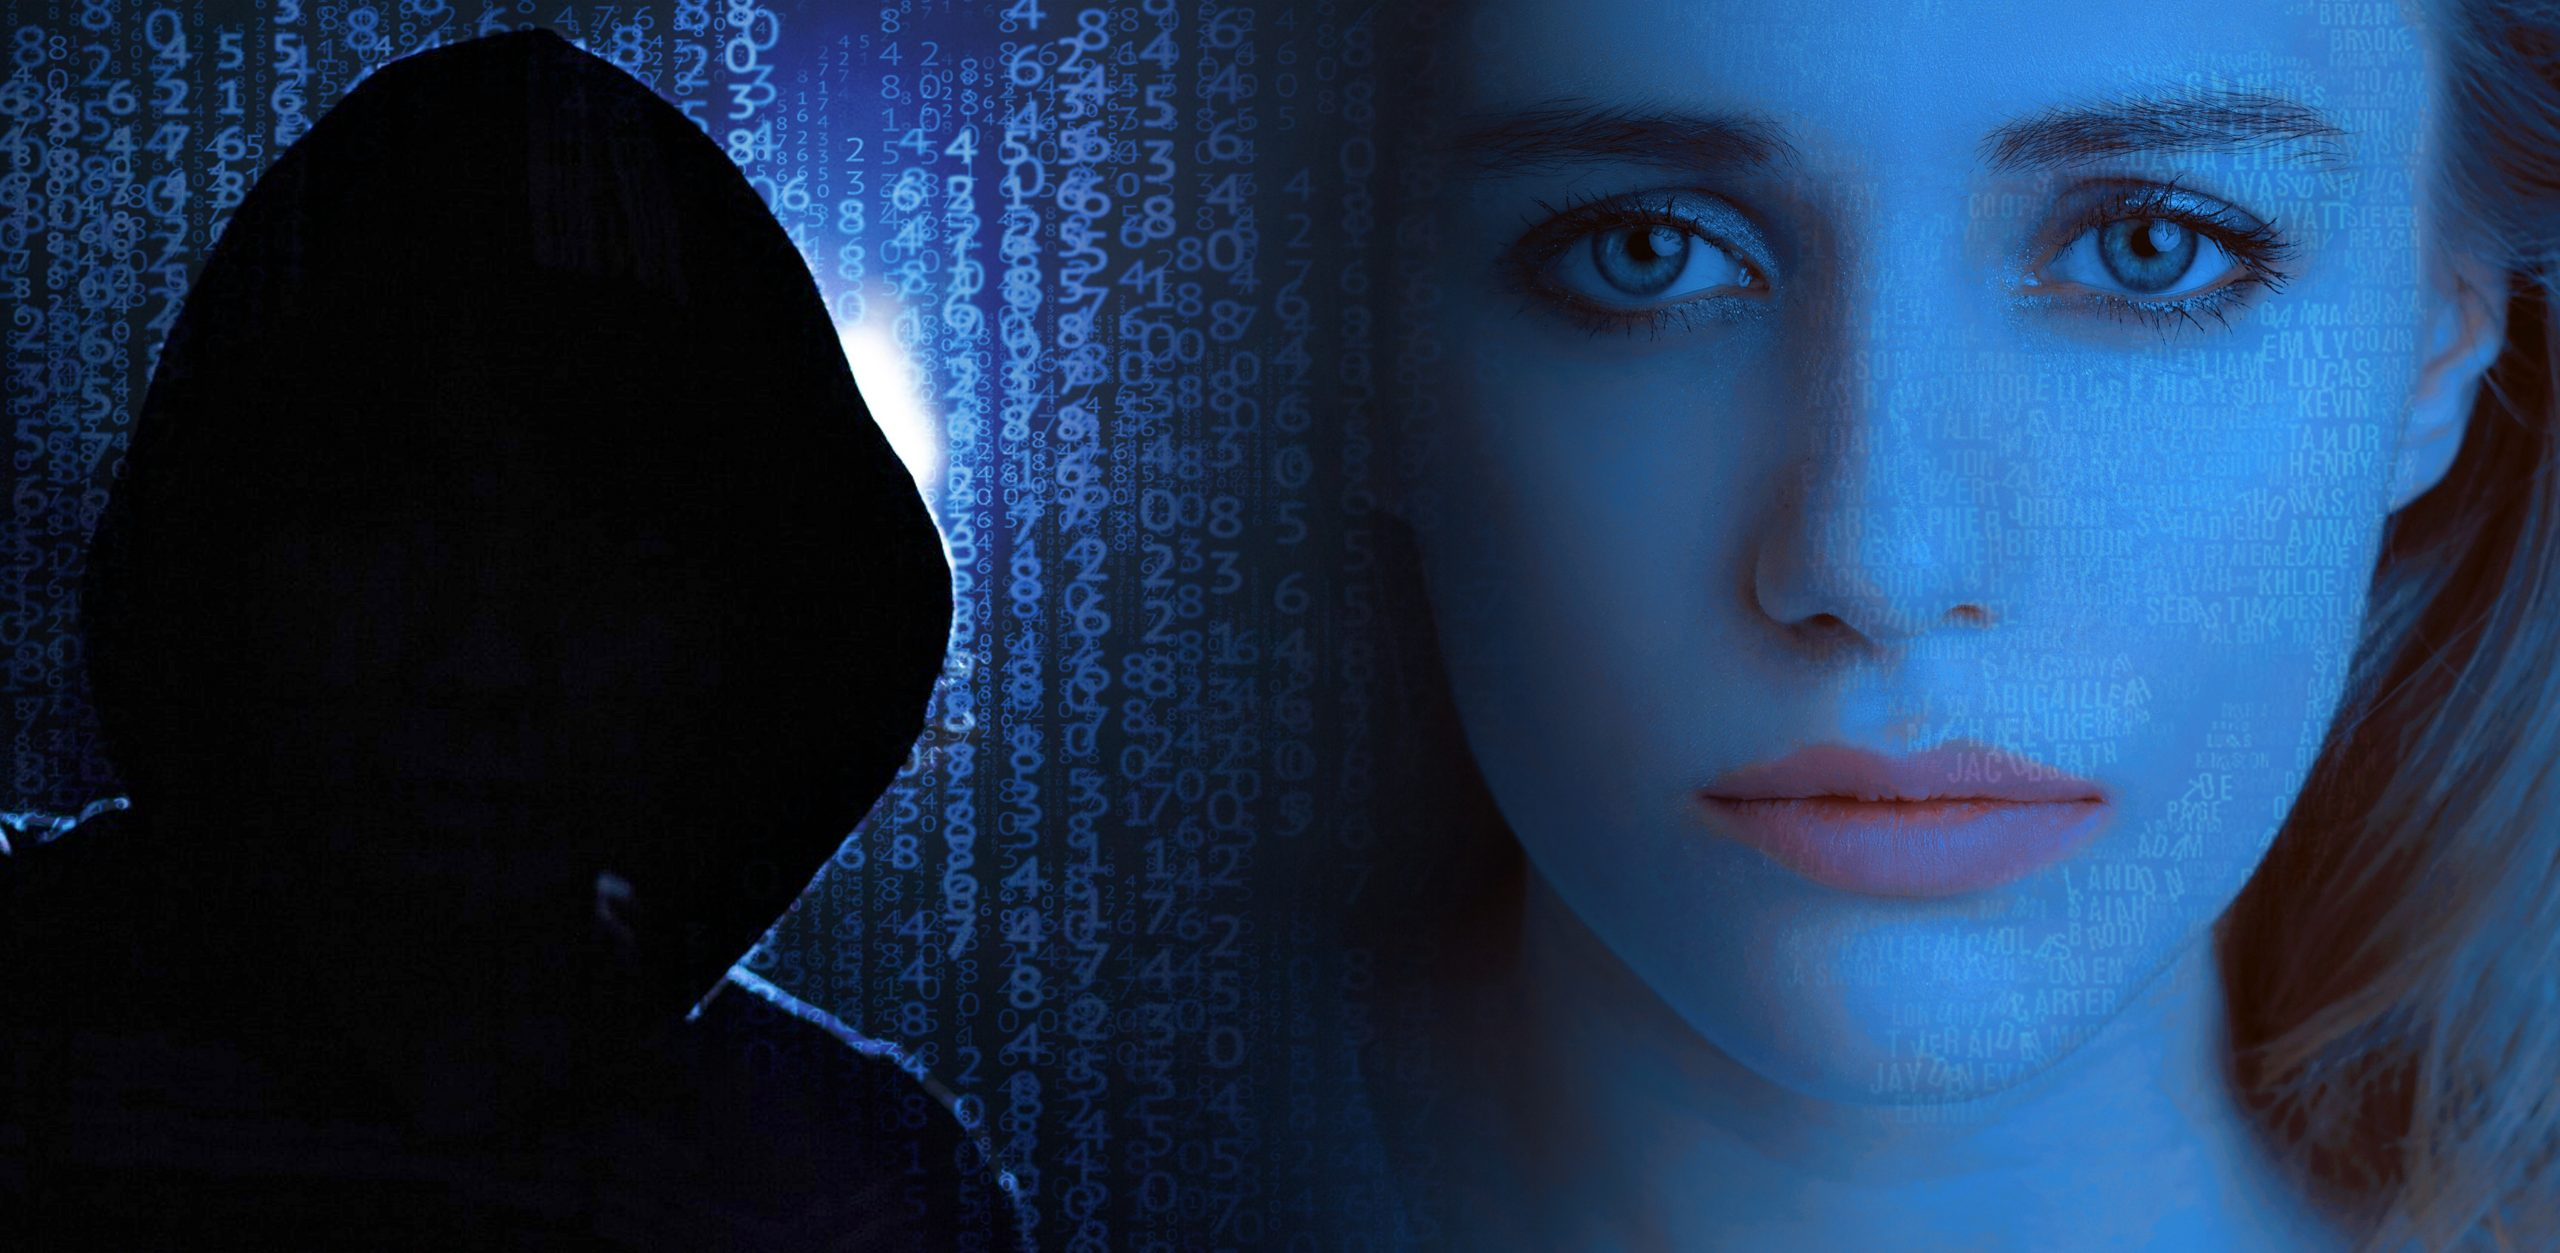 hooded hacker next to female victim